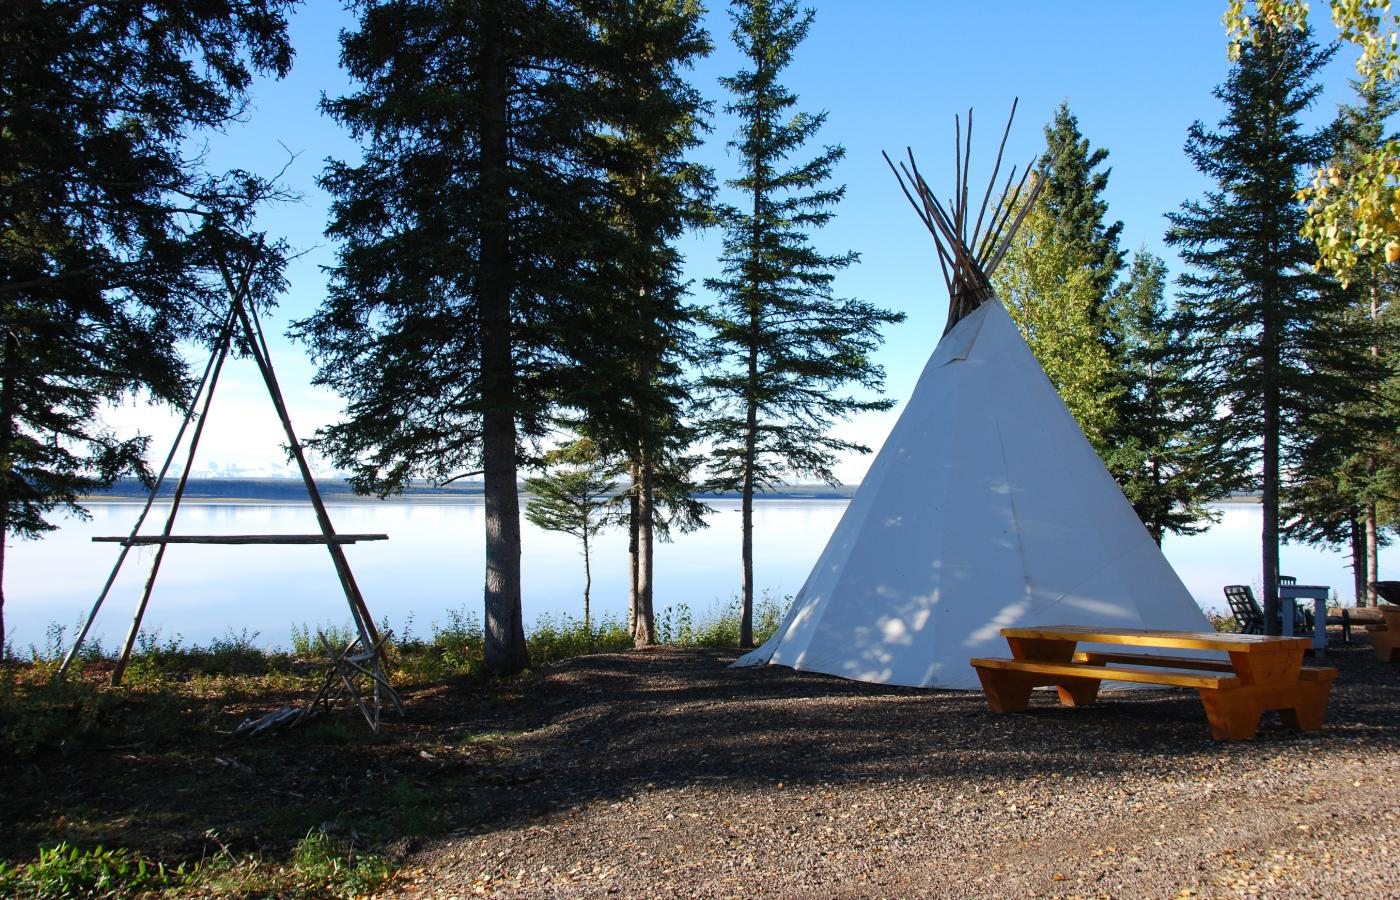 teepee tipi at mckinnon territorial park norman wells nwt